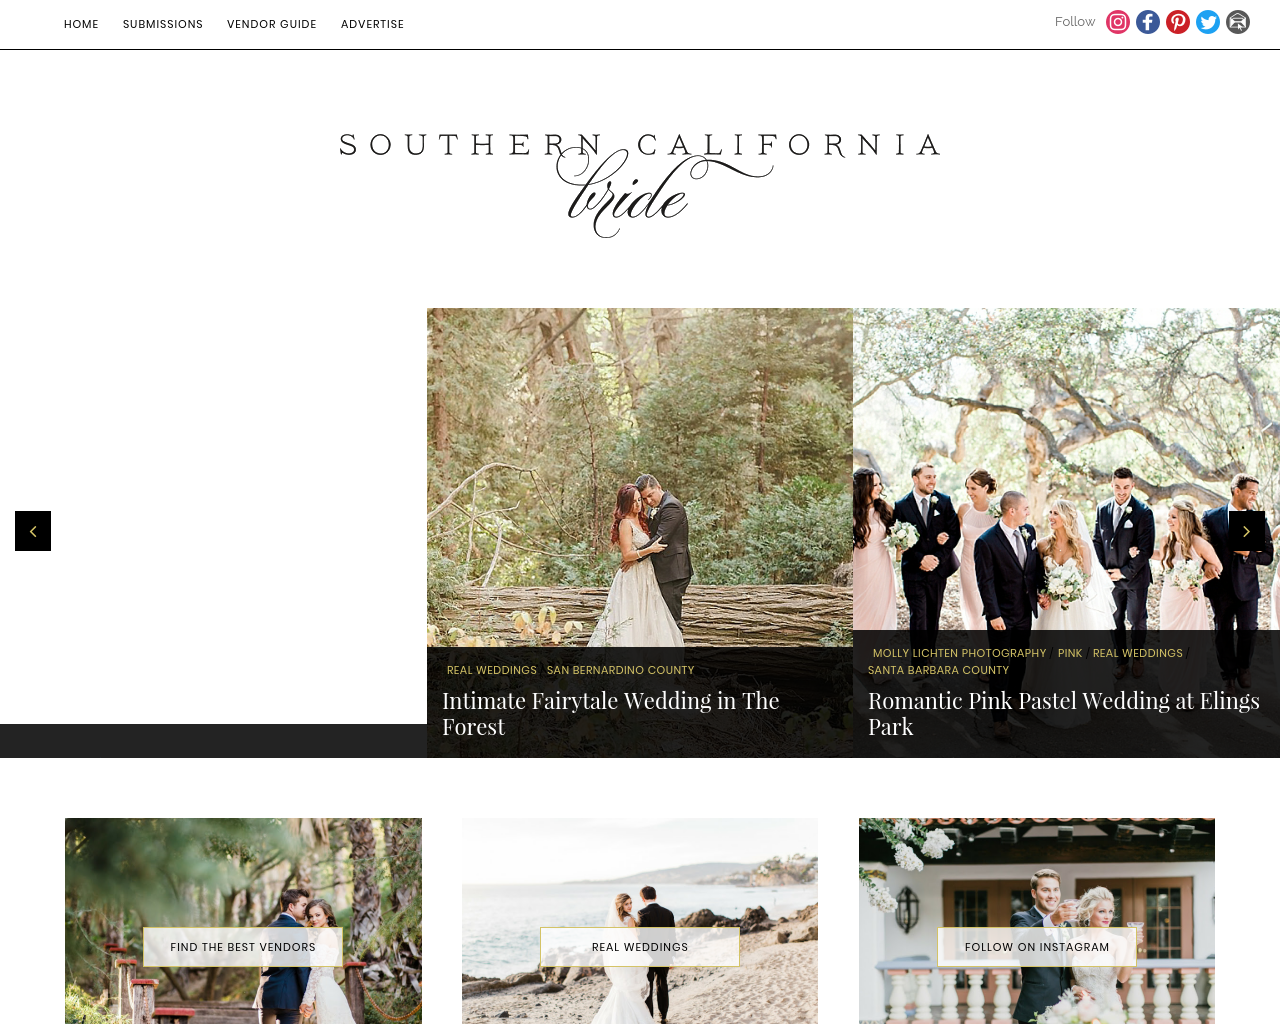 Southern-California-Bride-Advertising-Reviews-Pricing